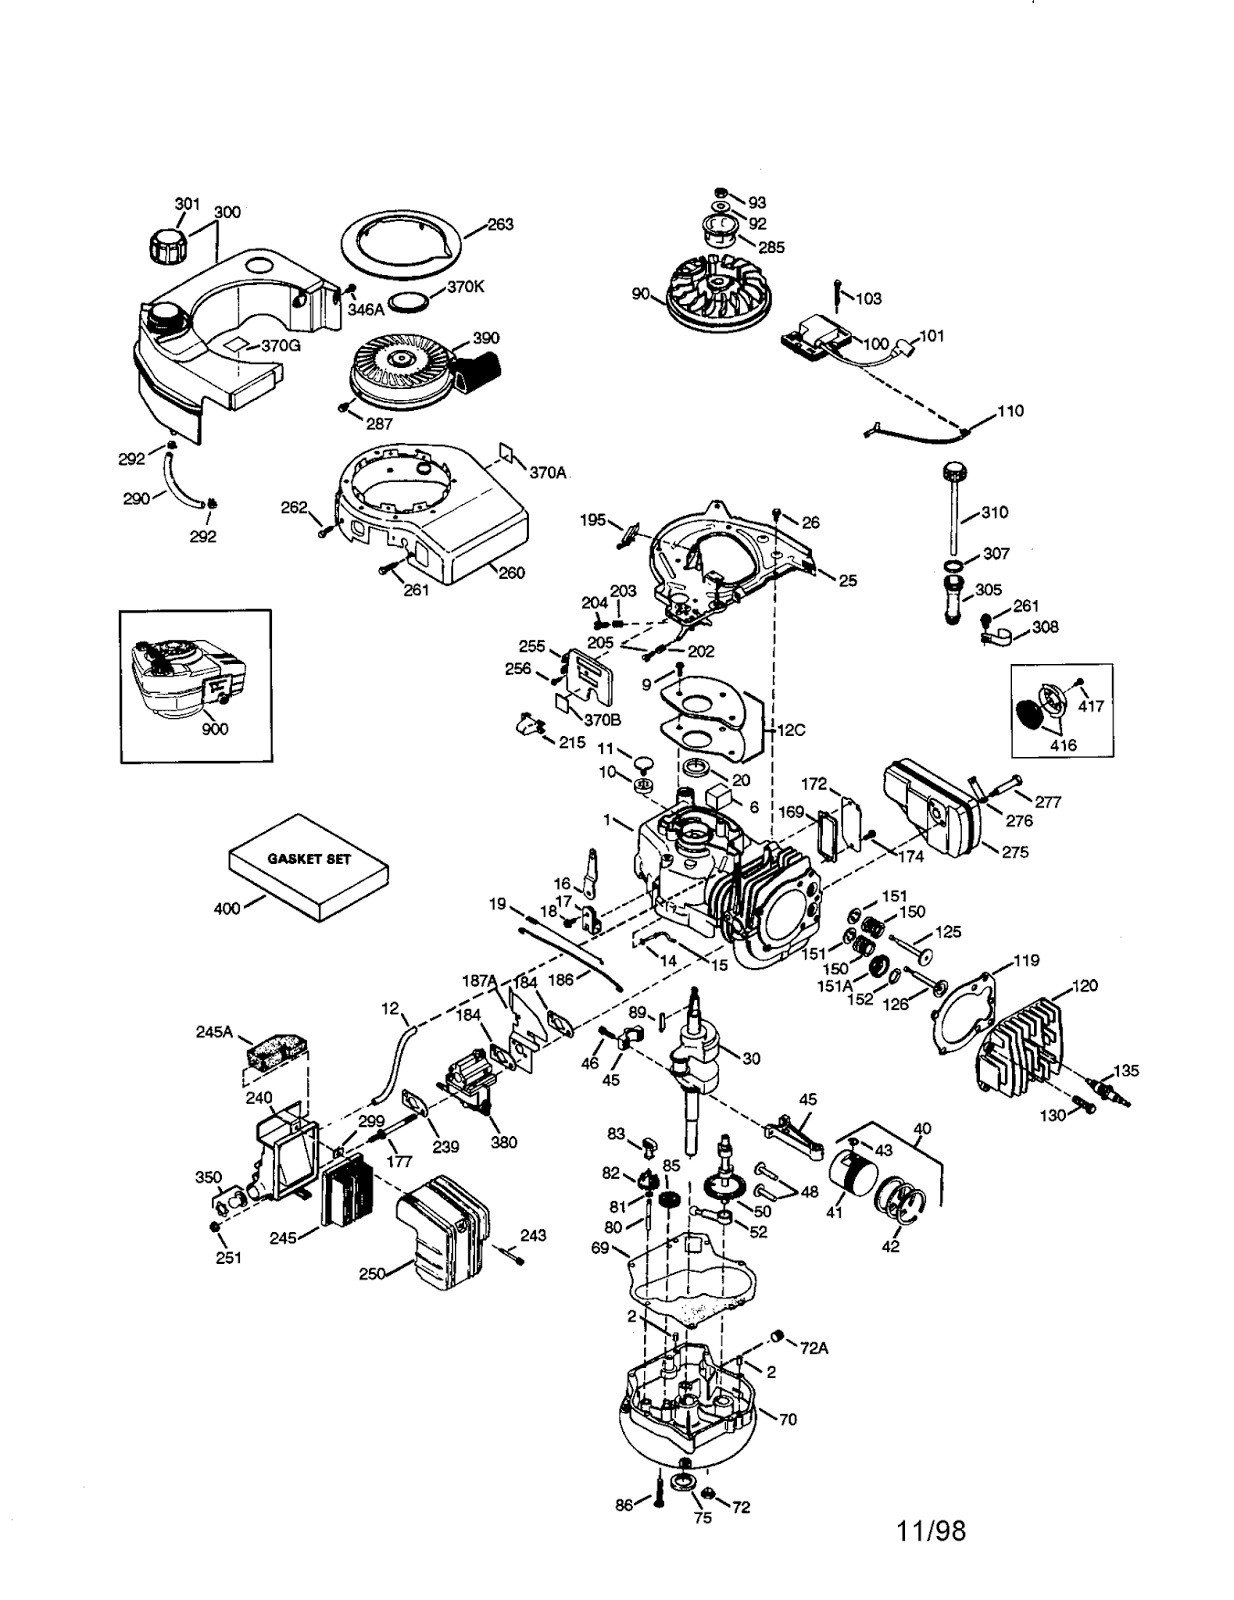 Tecumseh Parts Manual $ Apktodownload.com